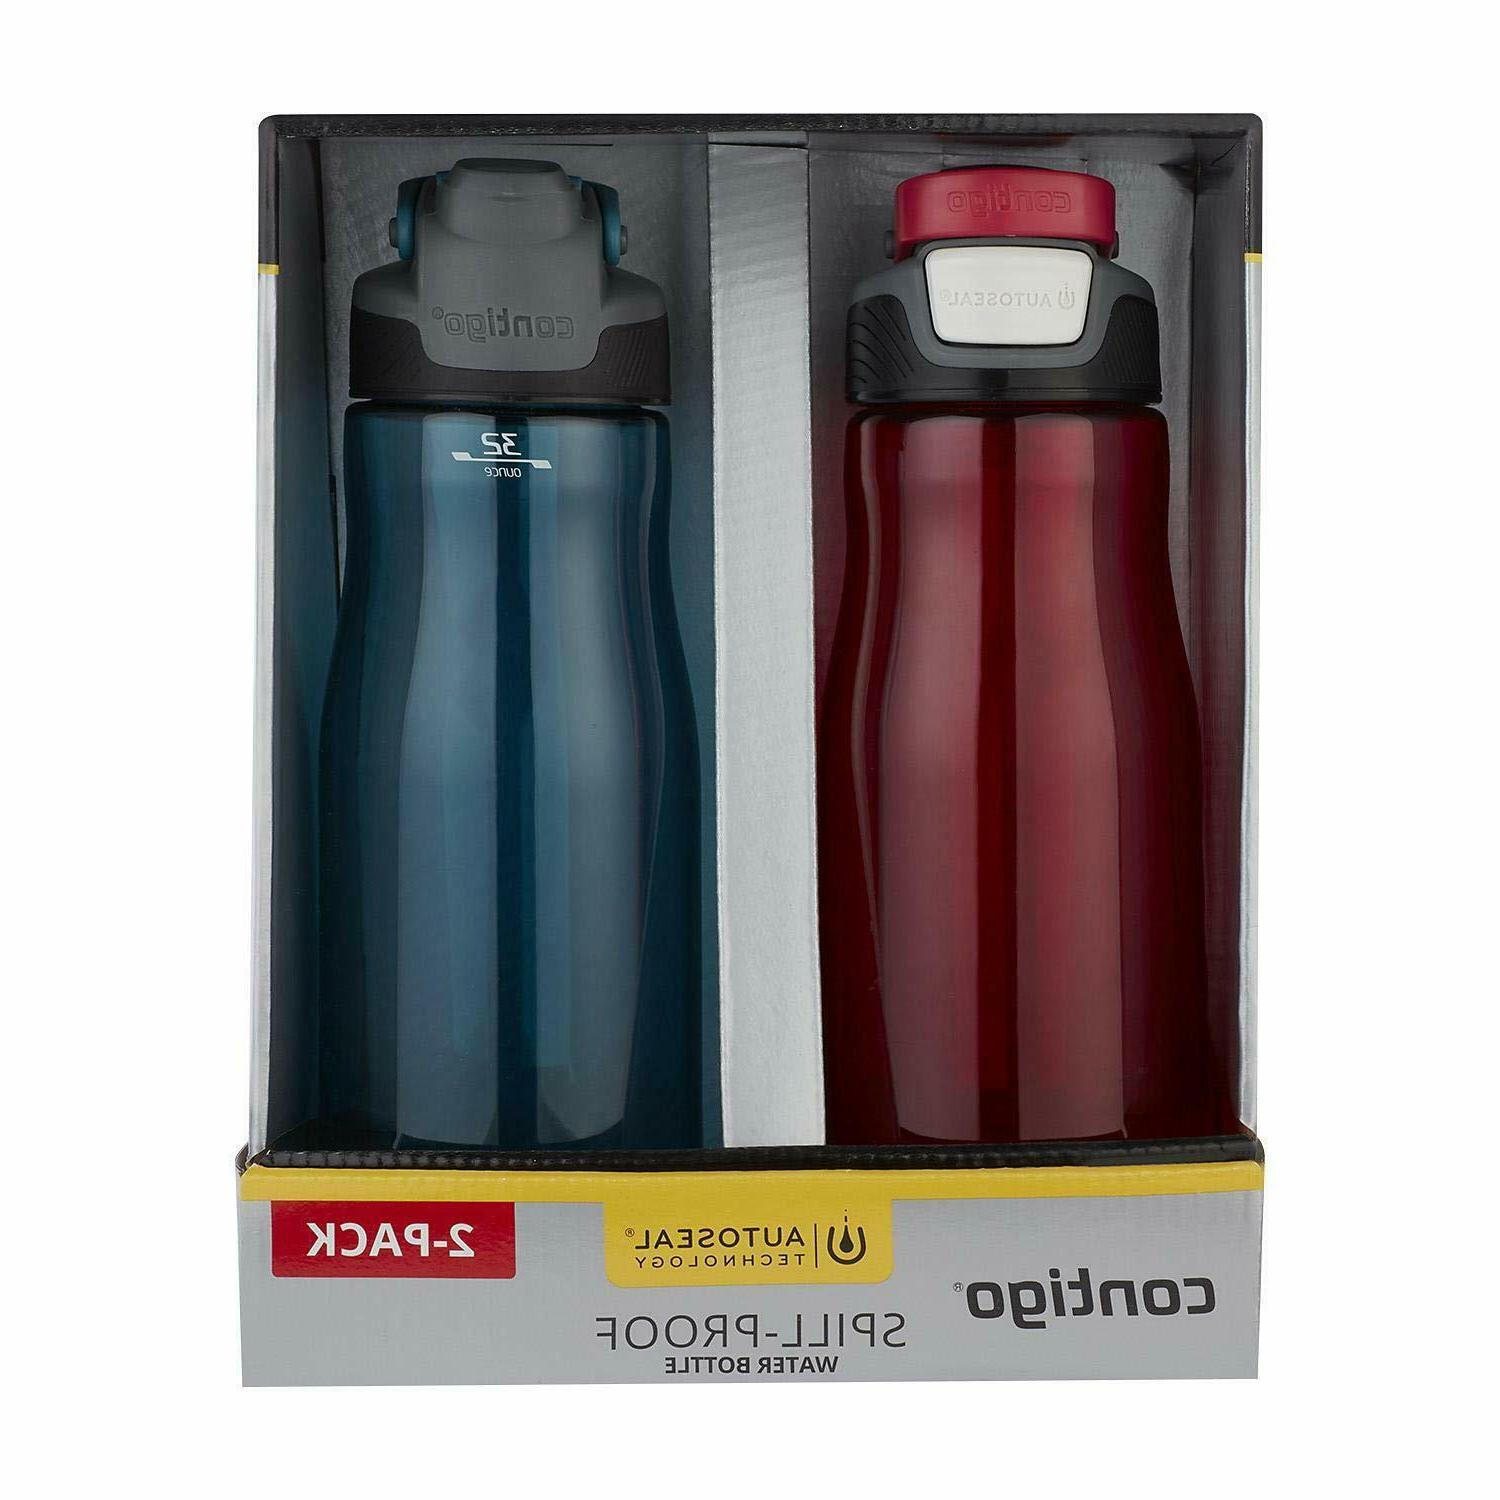 Contigo Autoseal Fit oz. Spill Water Bottle